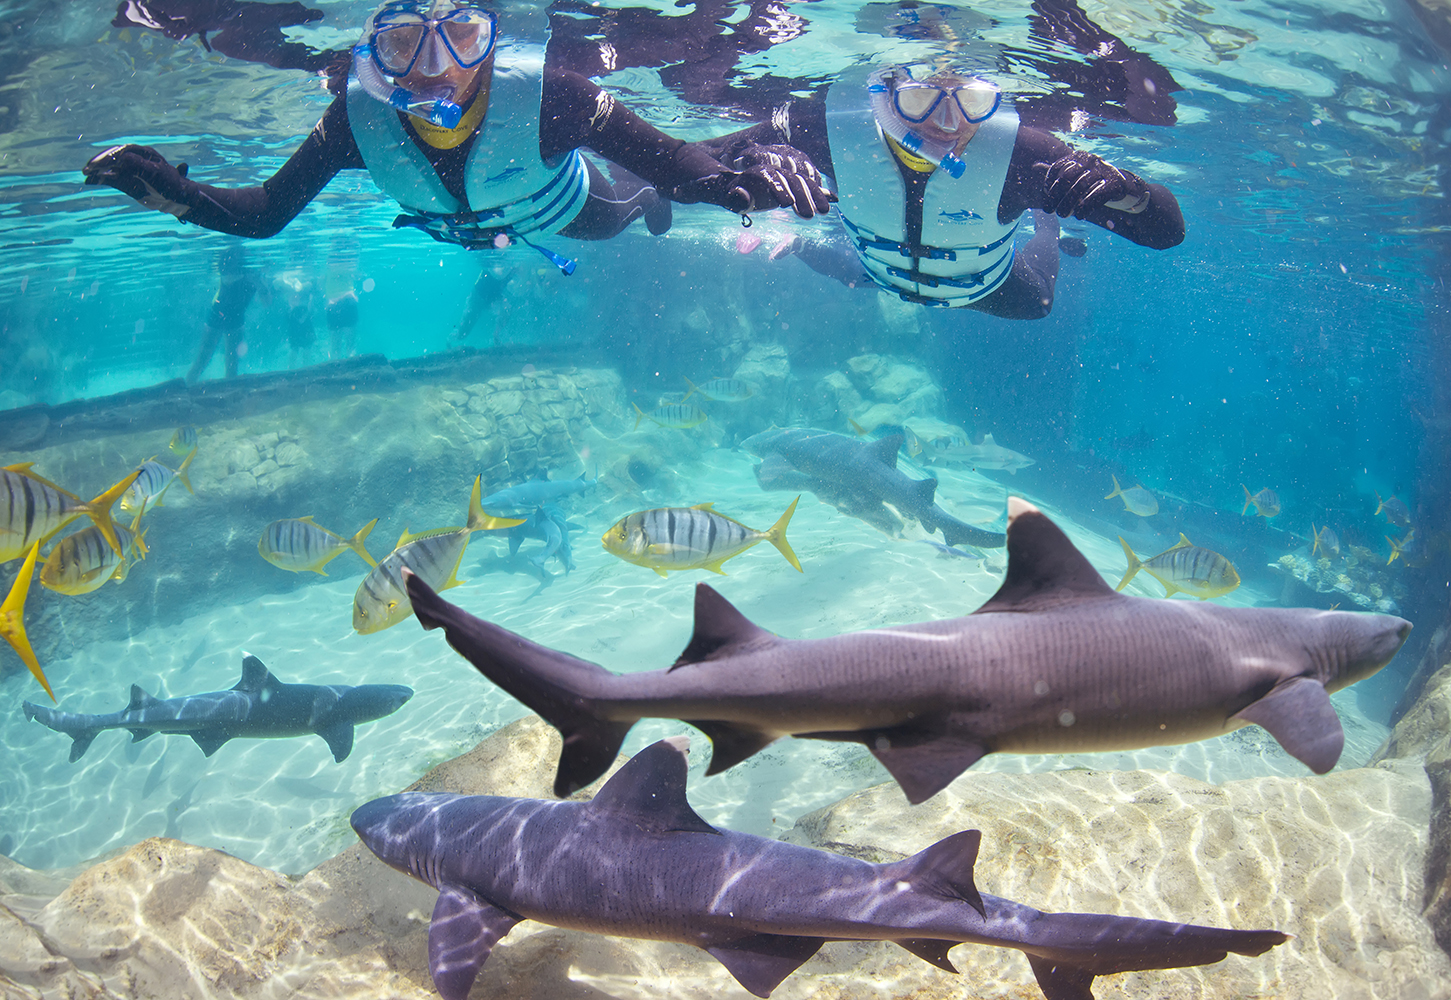 Swim with sharks and feed the stingrays! | Vagabond Images